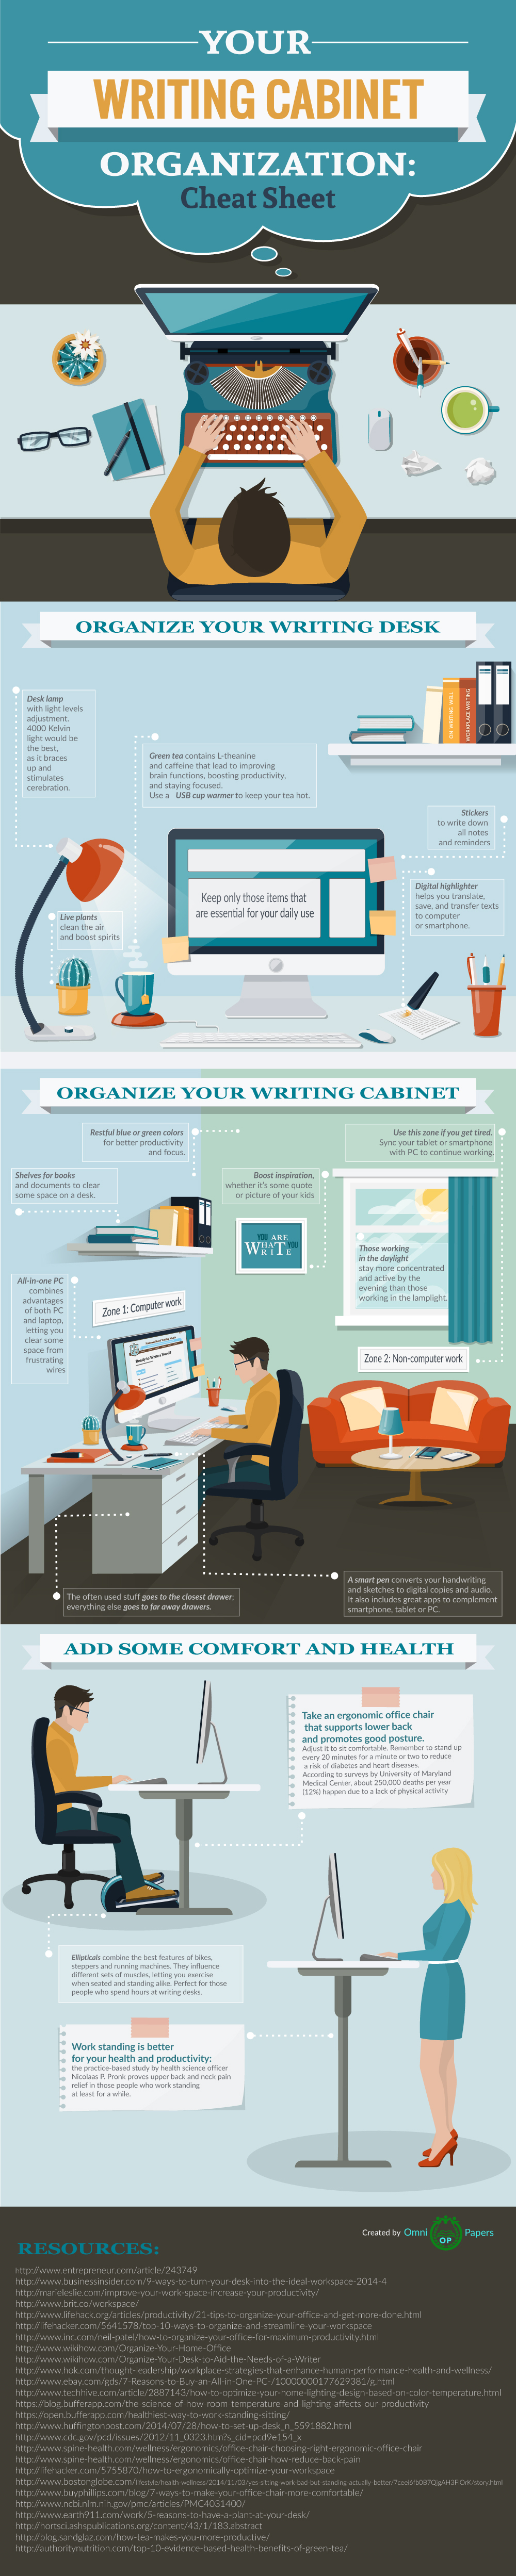 your-writing-cabinet-organization-techblogcorner